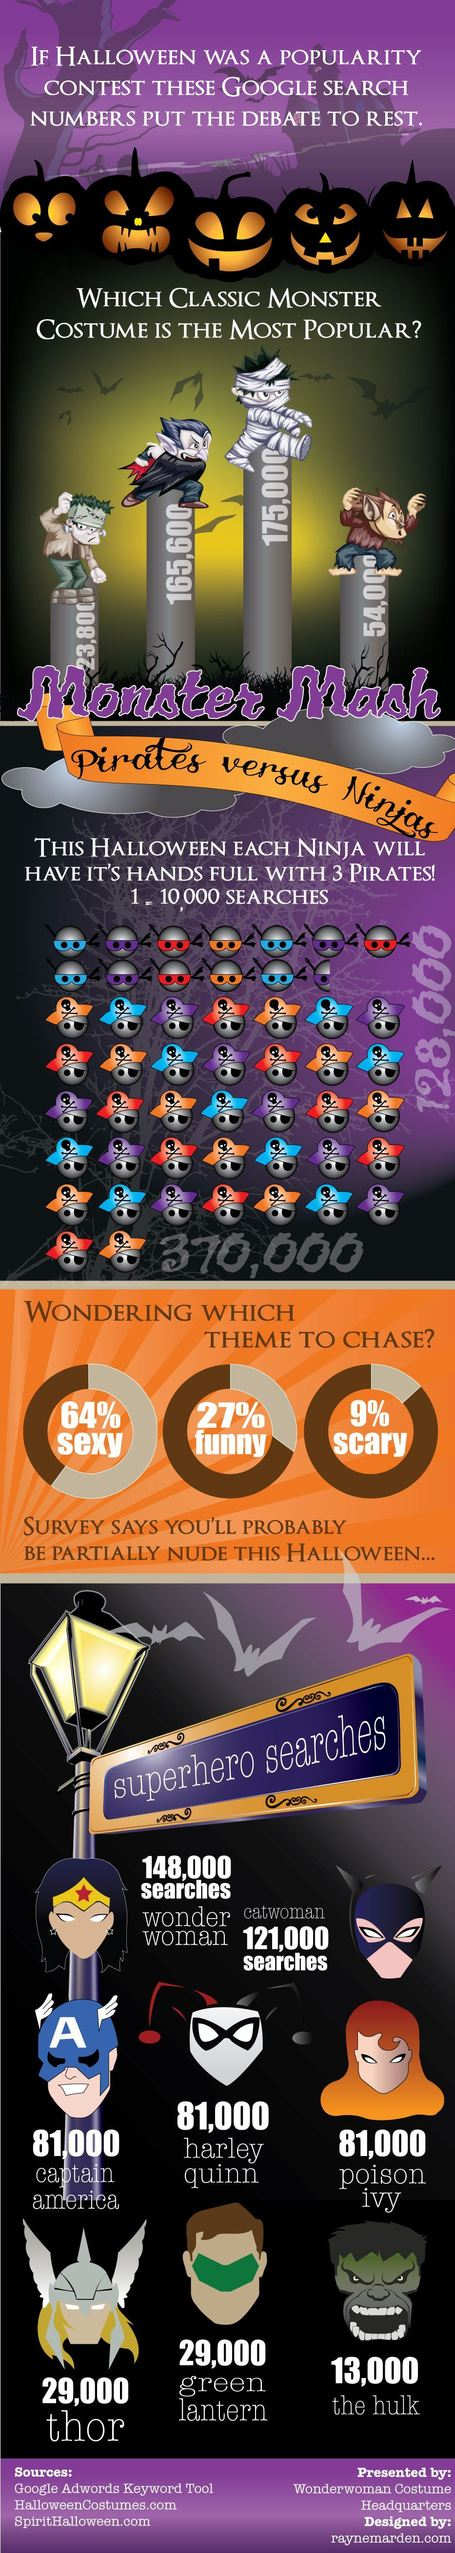 10 Most Popular Searched Halloween Costumes Worldwide | All Infographics | All Infographics | Scoop.it